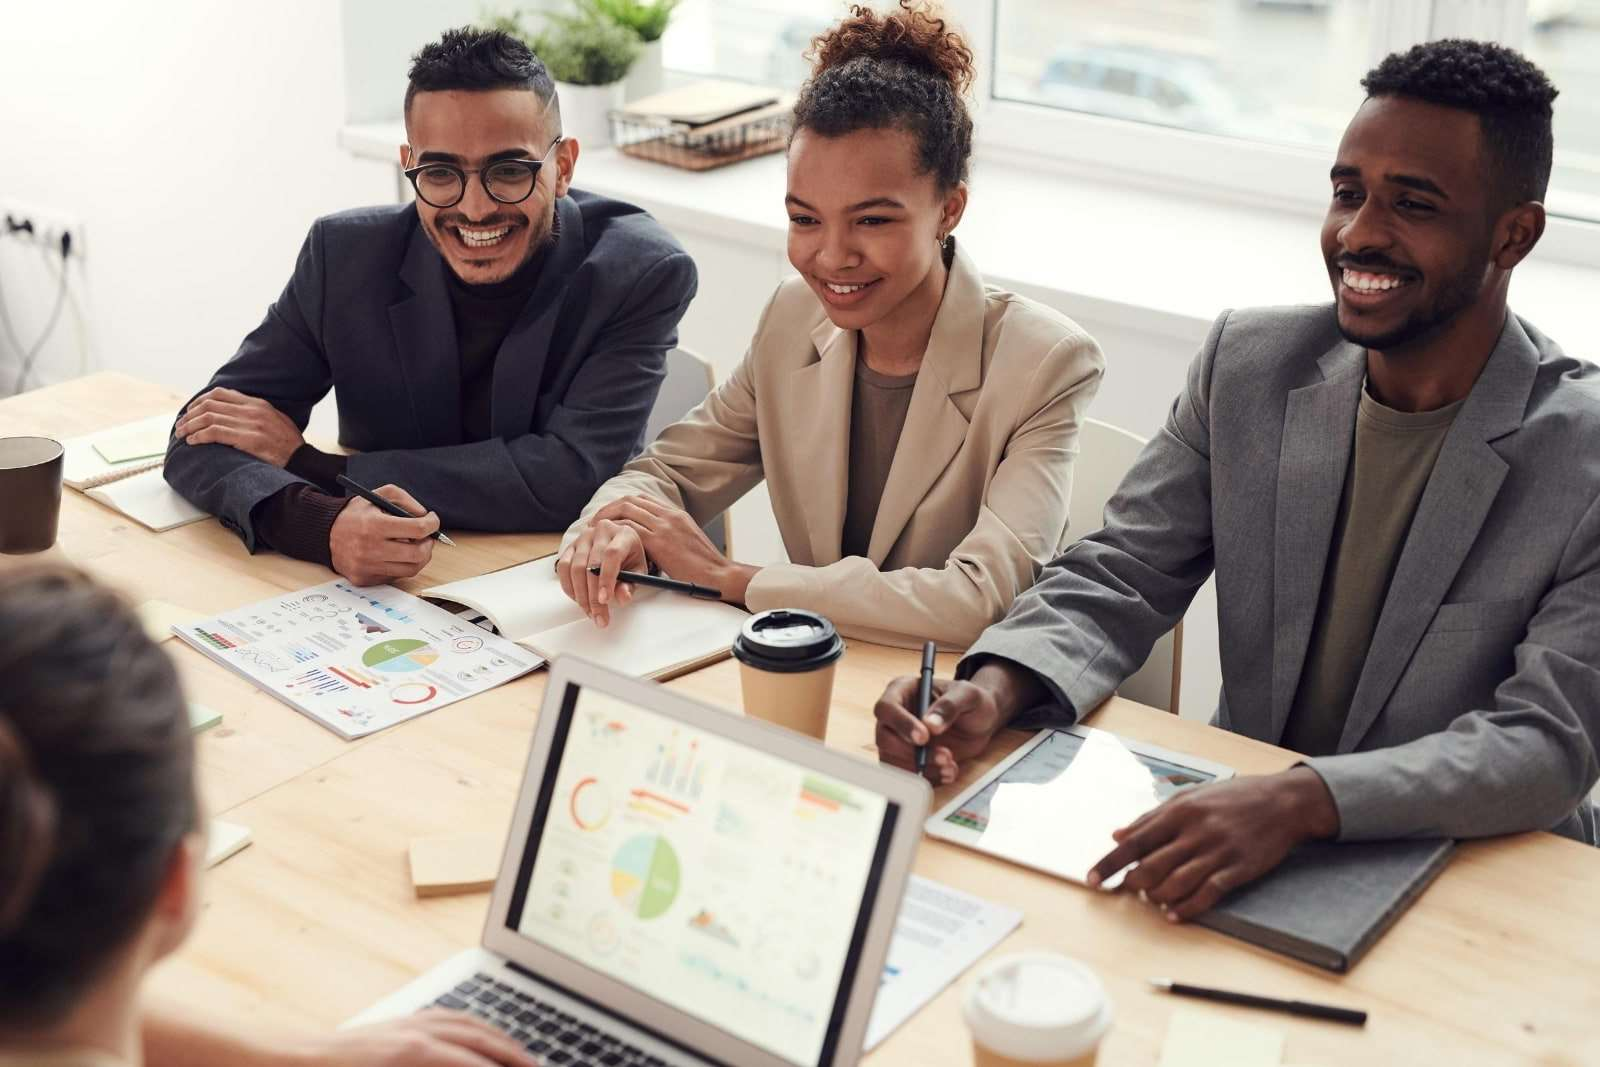 Our Top 29 Actionable Employee Appreciation Ideas To Put a Smile on Their Face